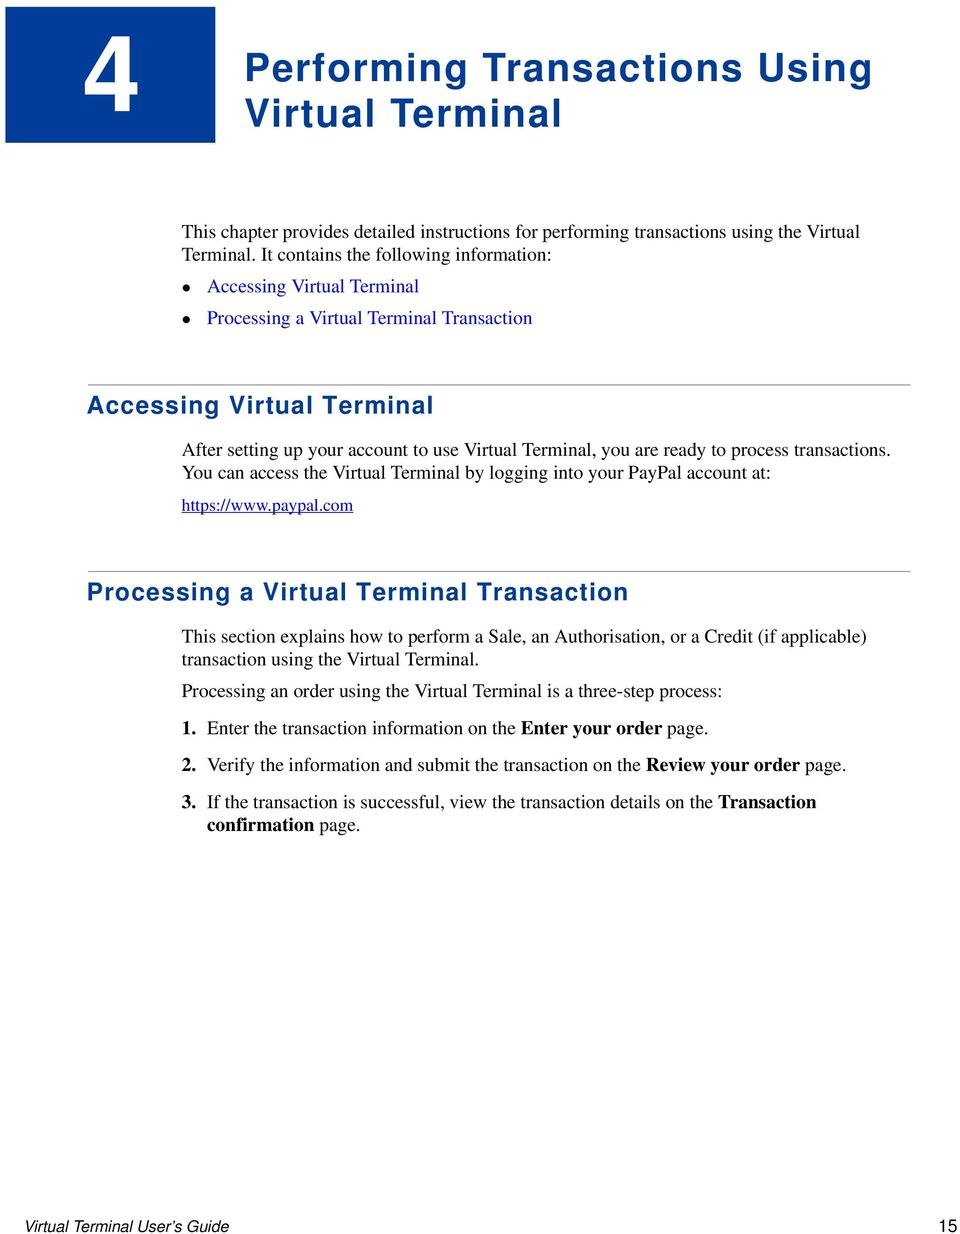 ready to process transactions. You can access the Virtual Terminal by logging into your PayPal account at: https://www.paypal.